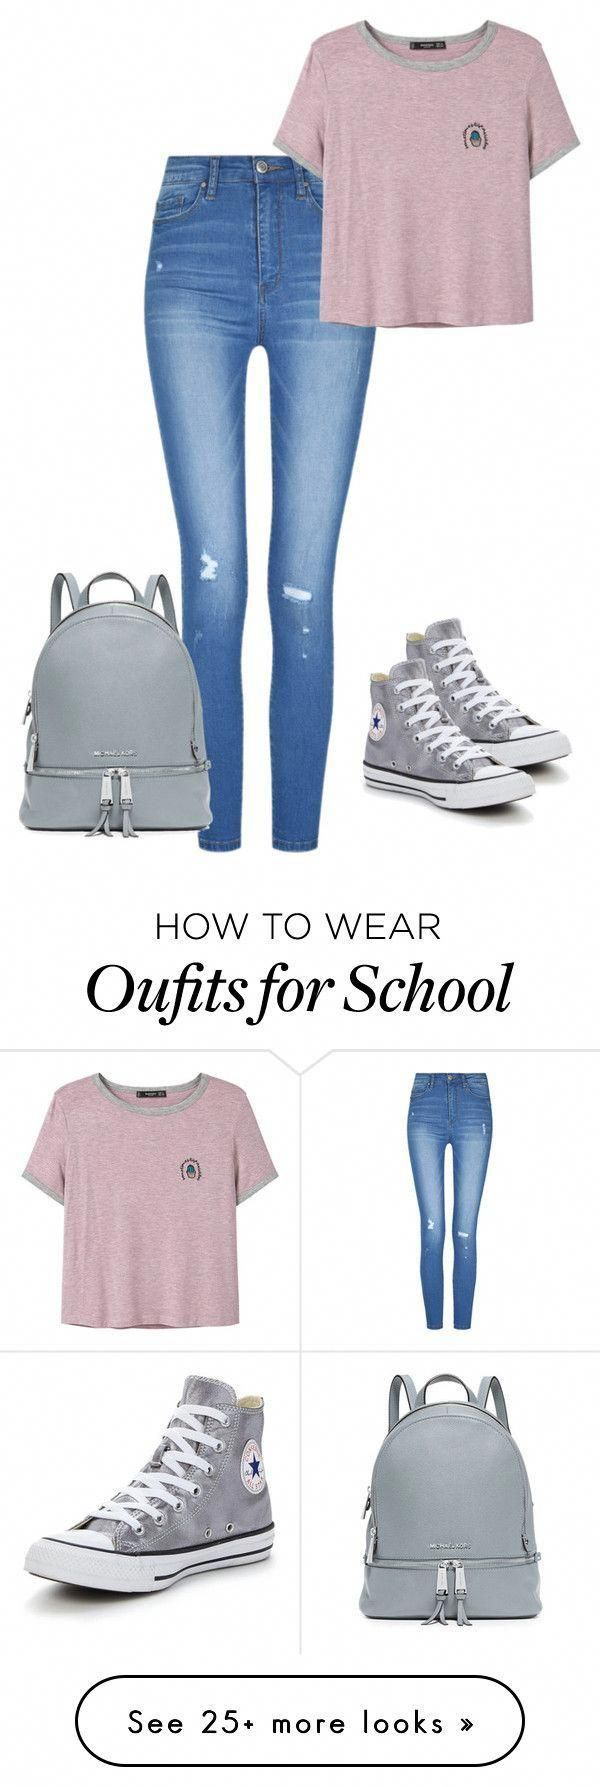 Herbstmode-Outfits #outfits #fashionideasschool